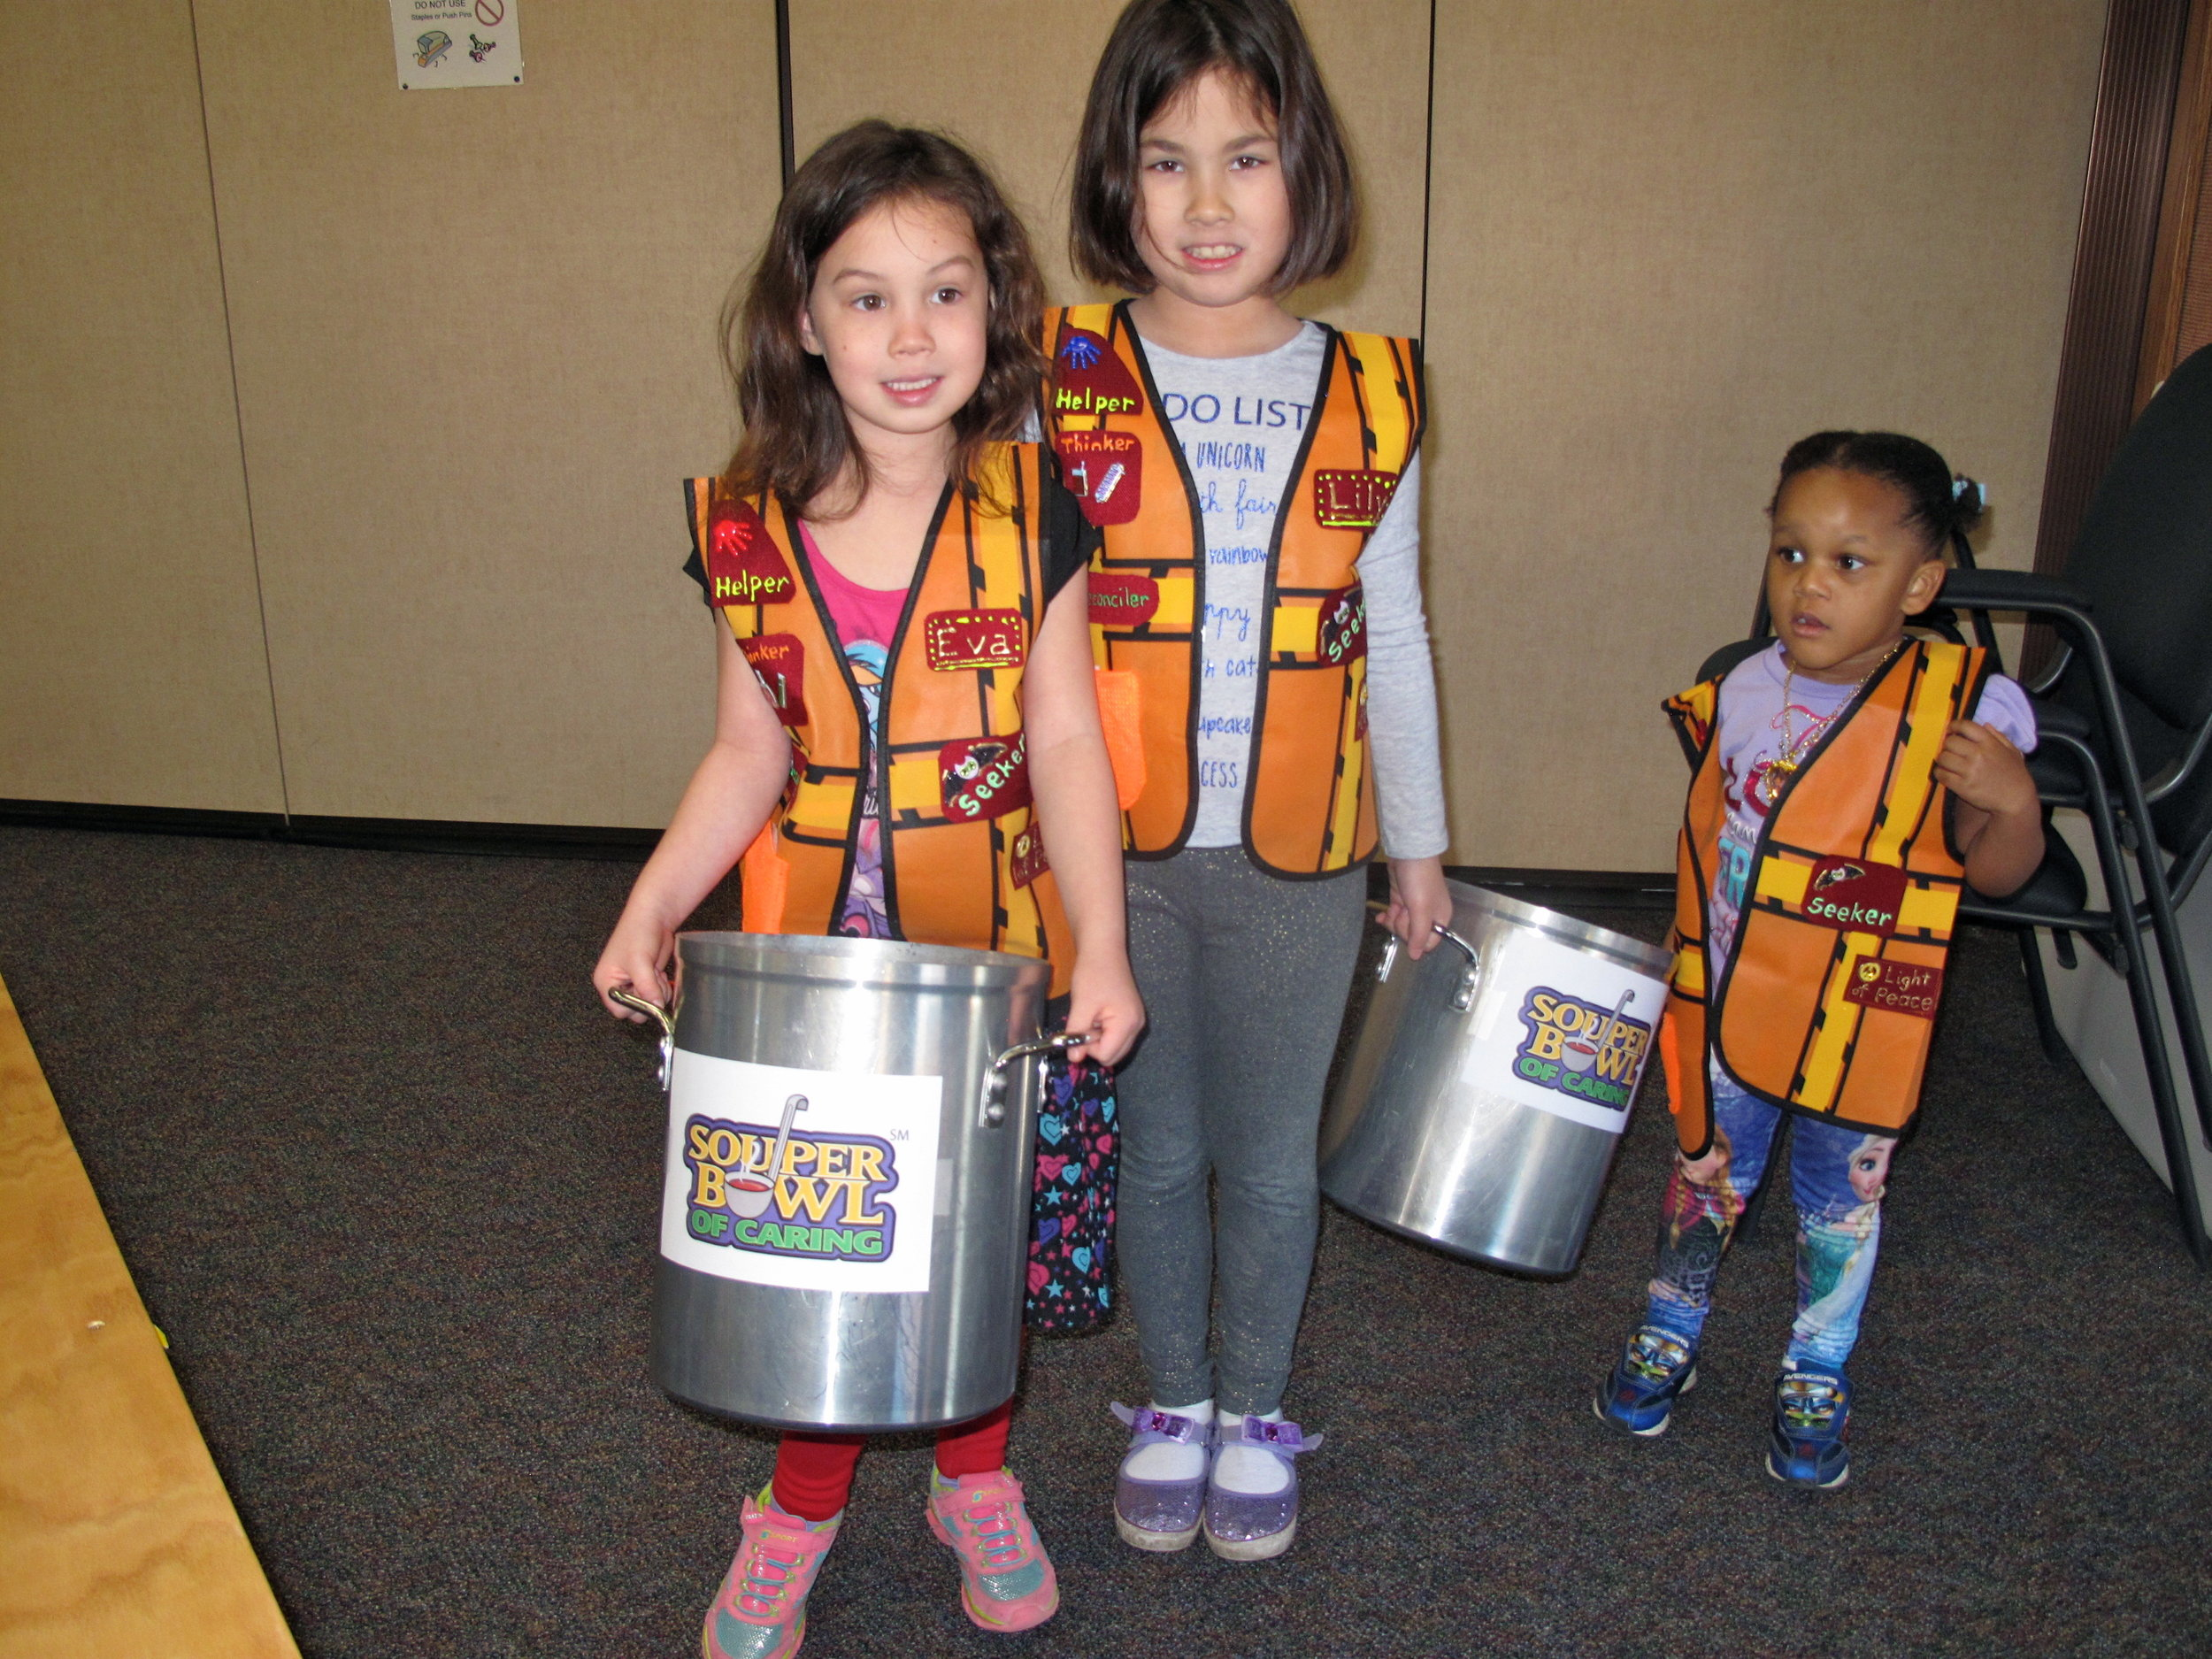 Eva and Lily Weleck and Zoey for Souper Bowl.JPG